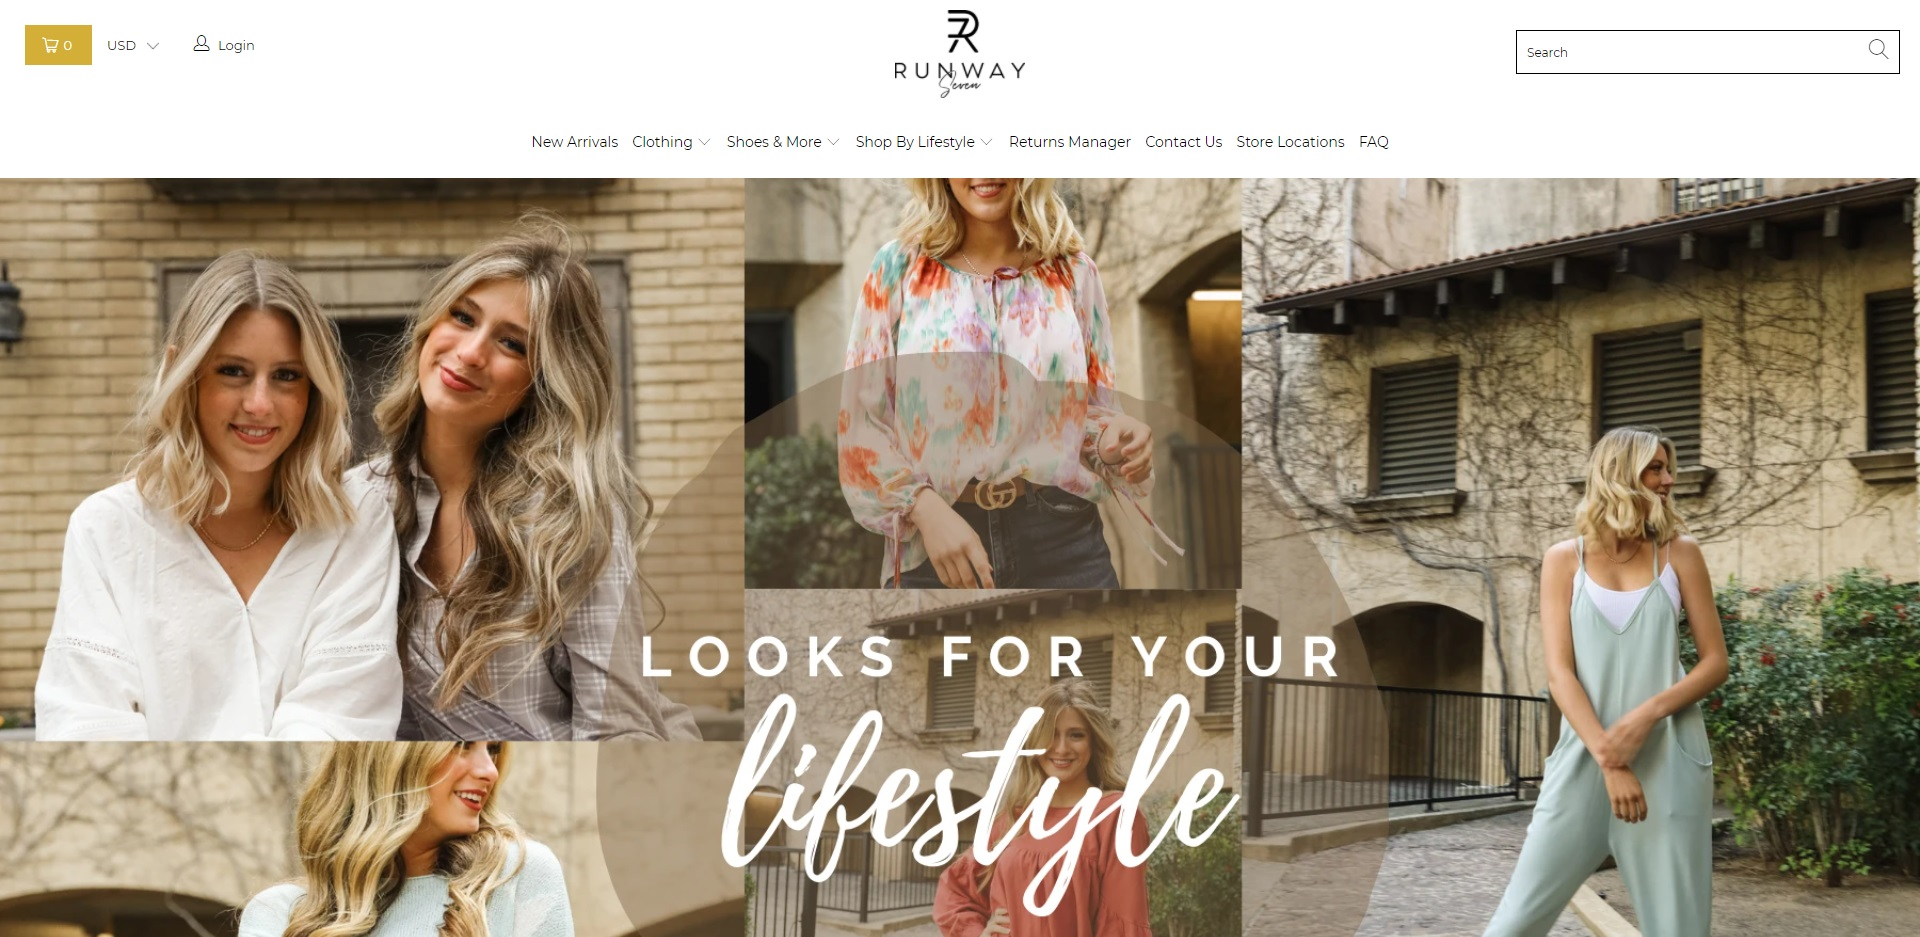 Best Women's Clothing in Fort Worth